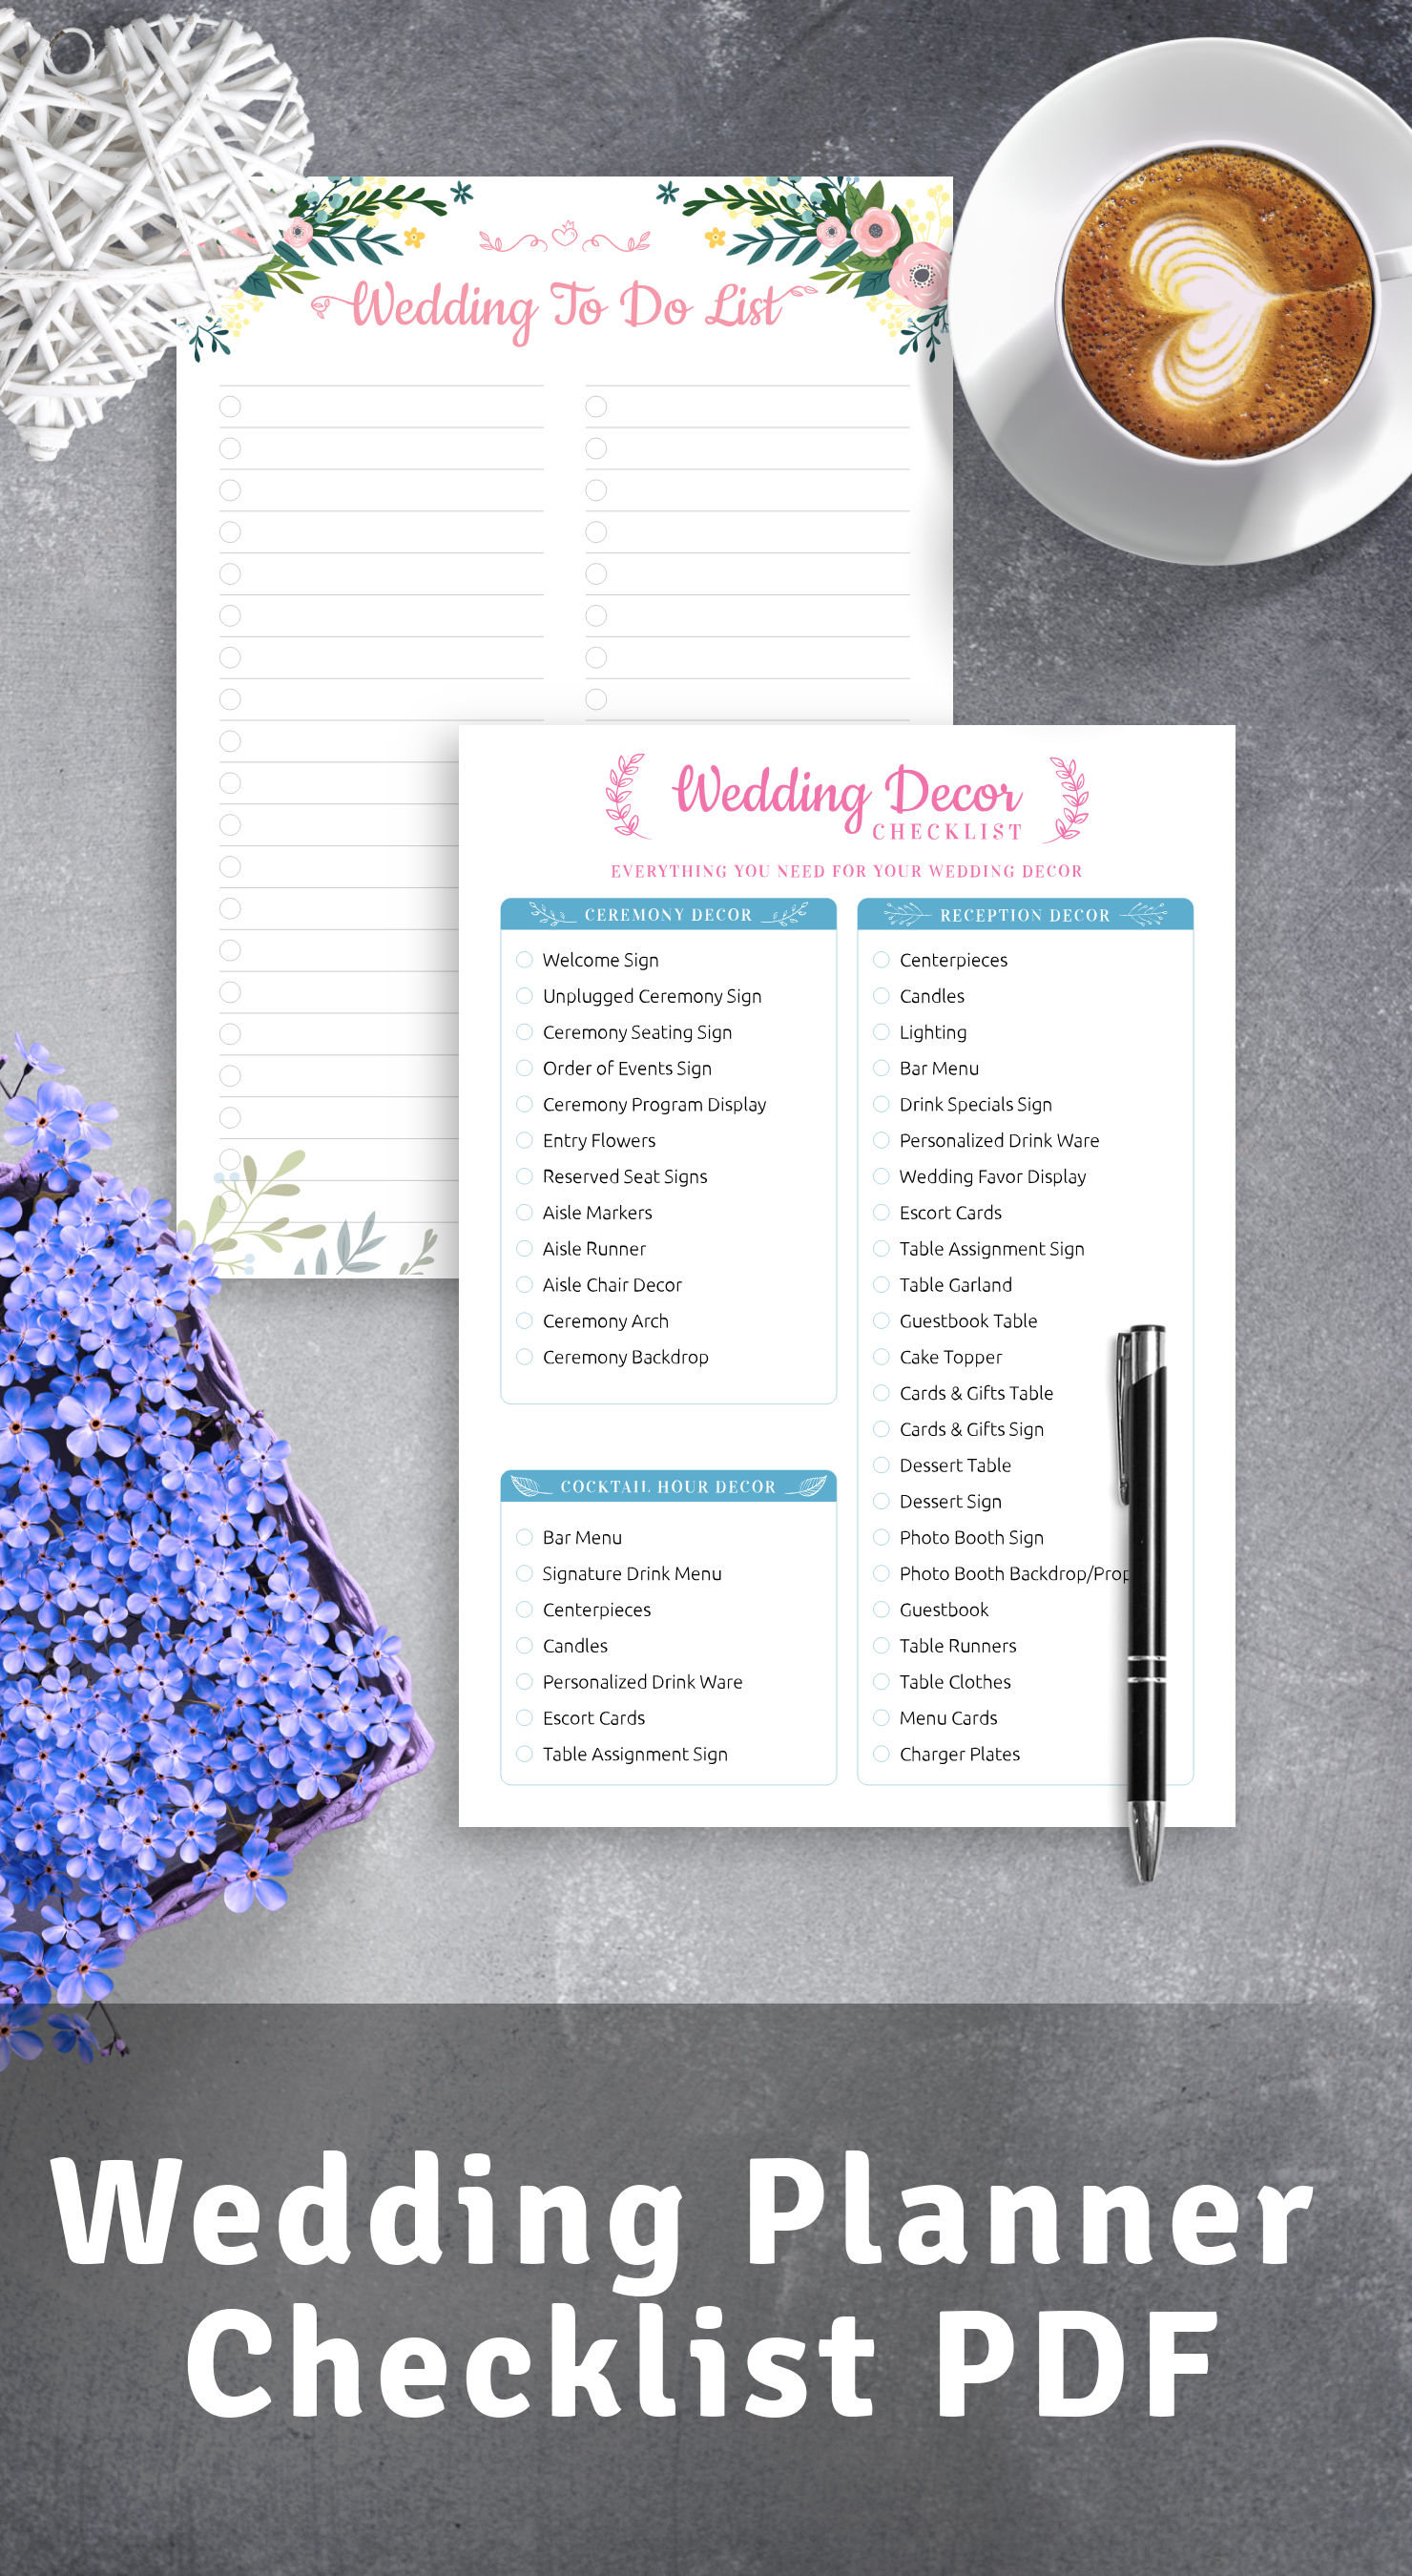 Best Wedding Planner Checklist PDF